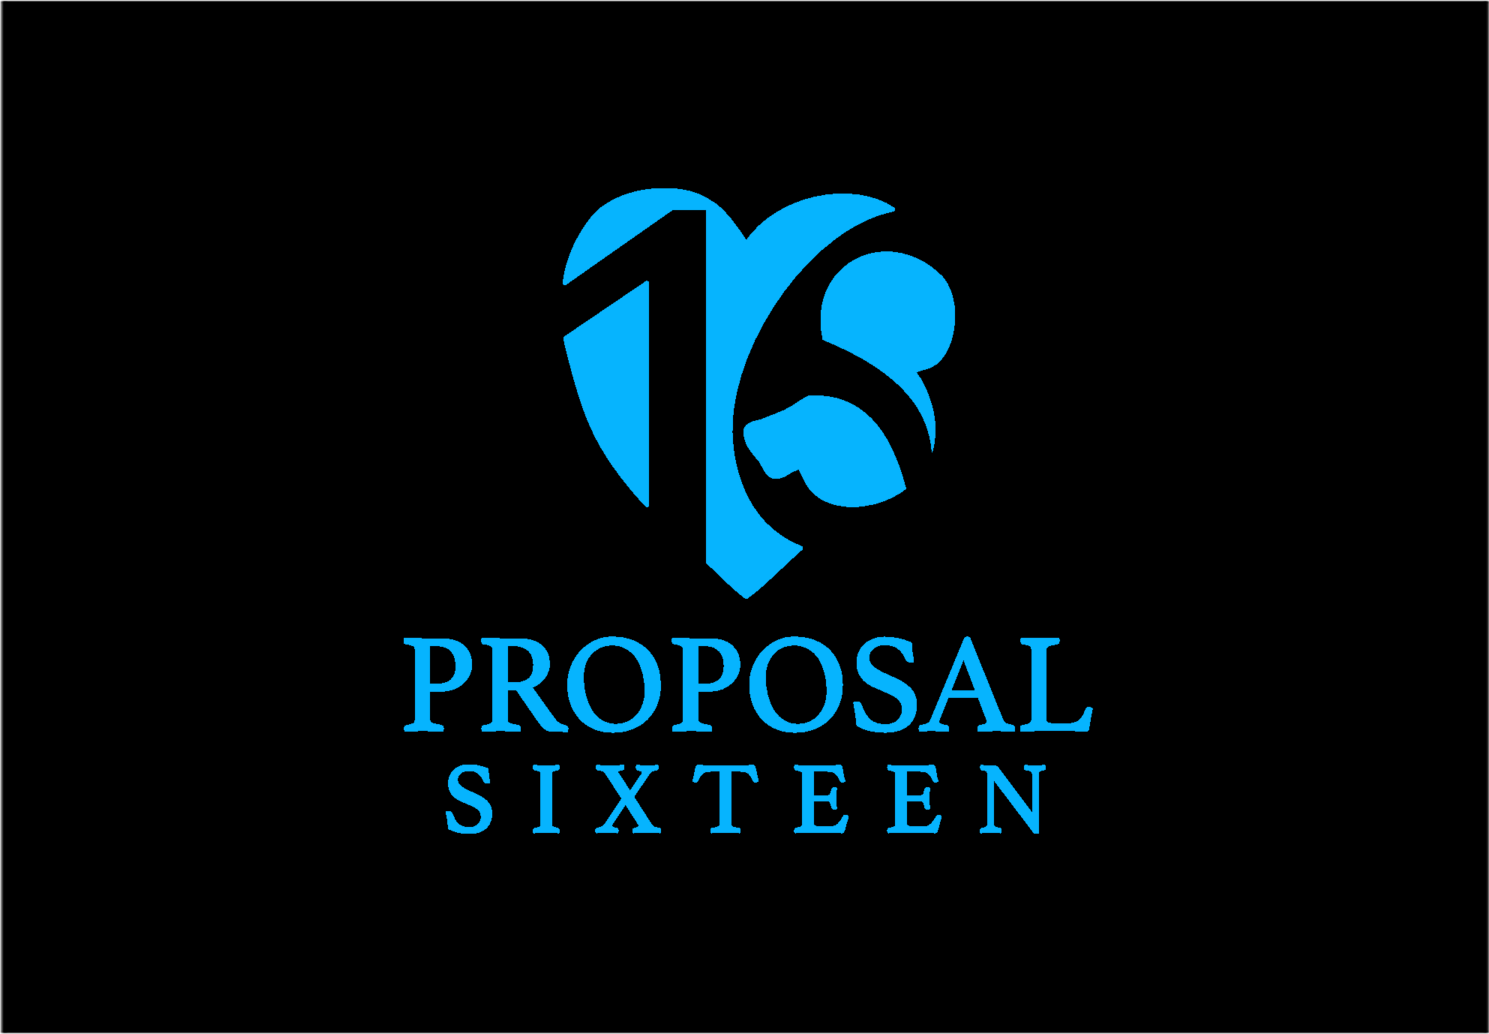 Alabama Pro-Life Proposal 16 Seeks Nullification of Federal Law